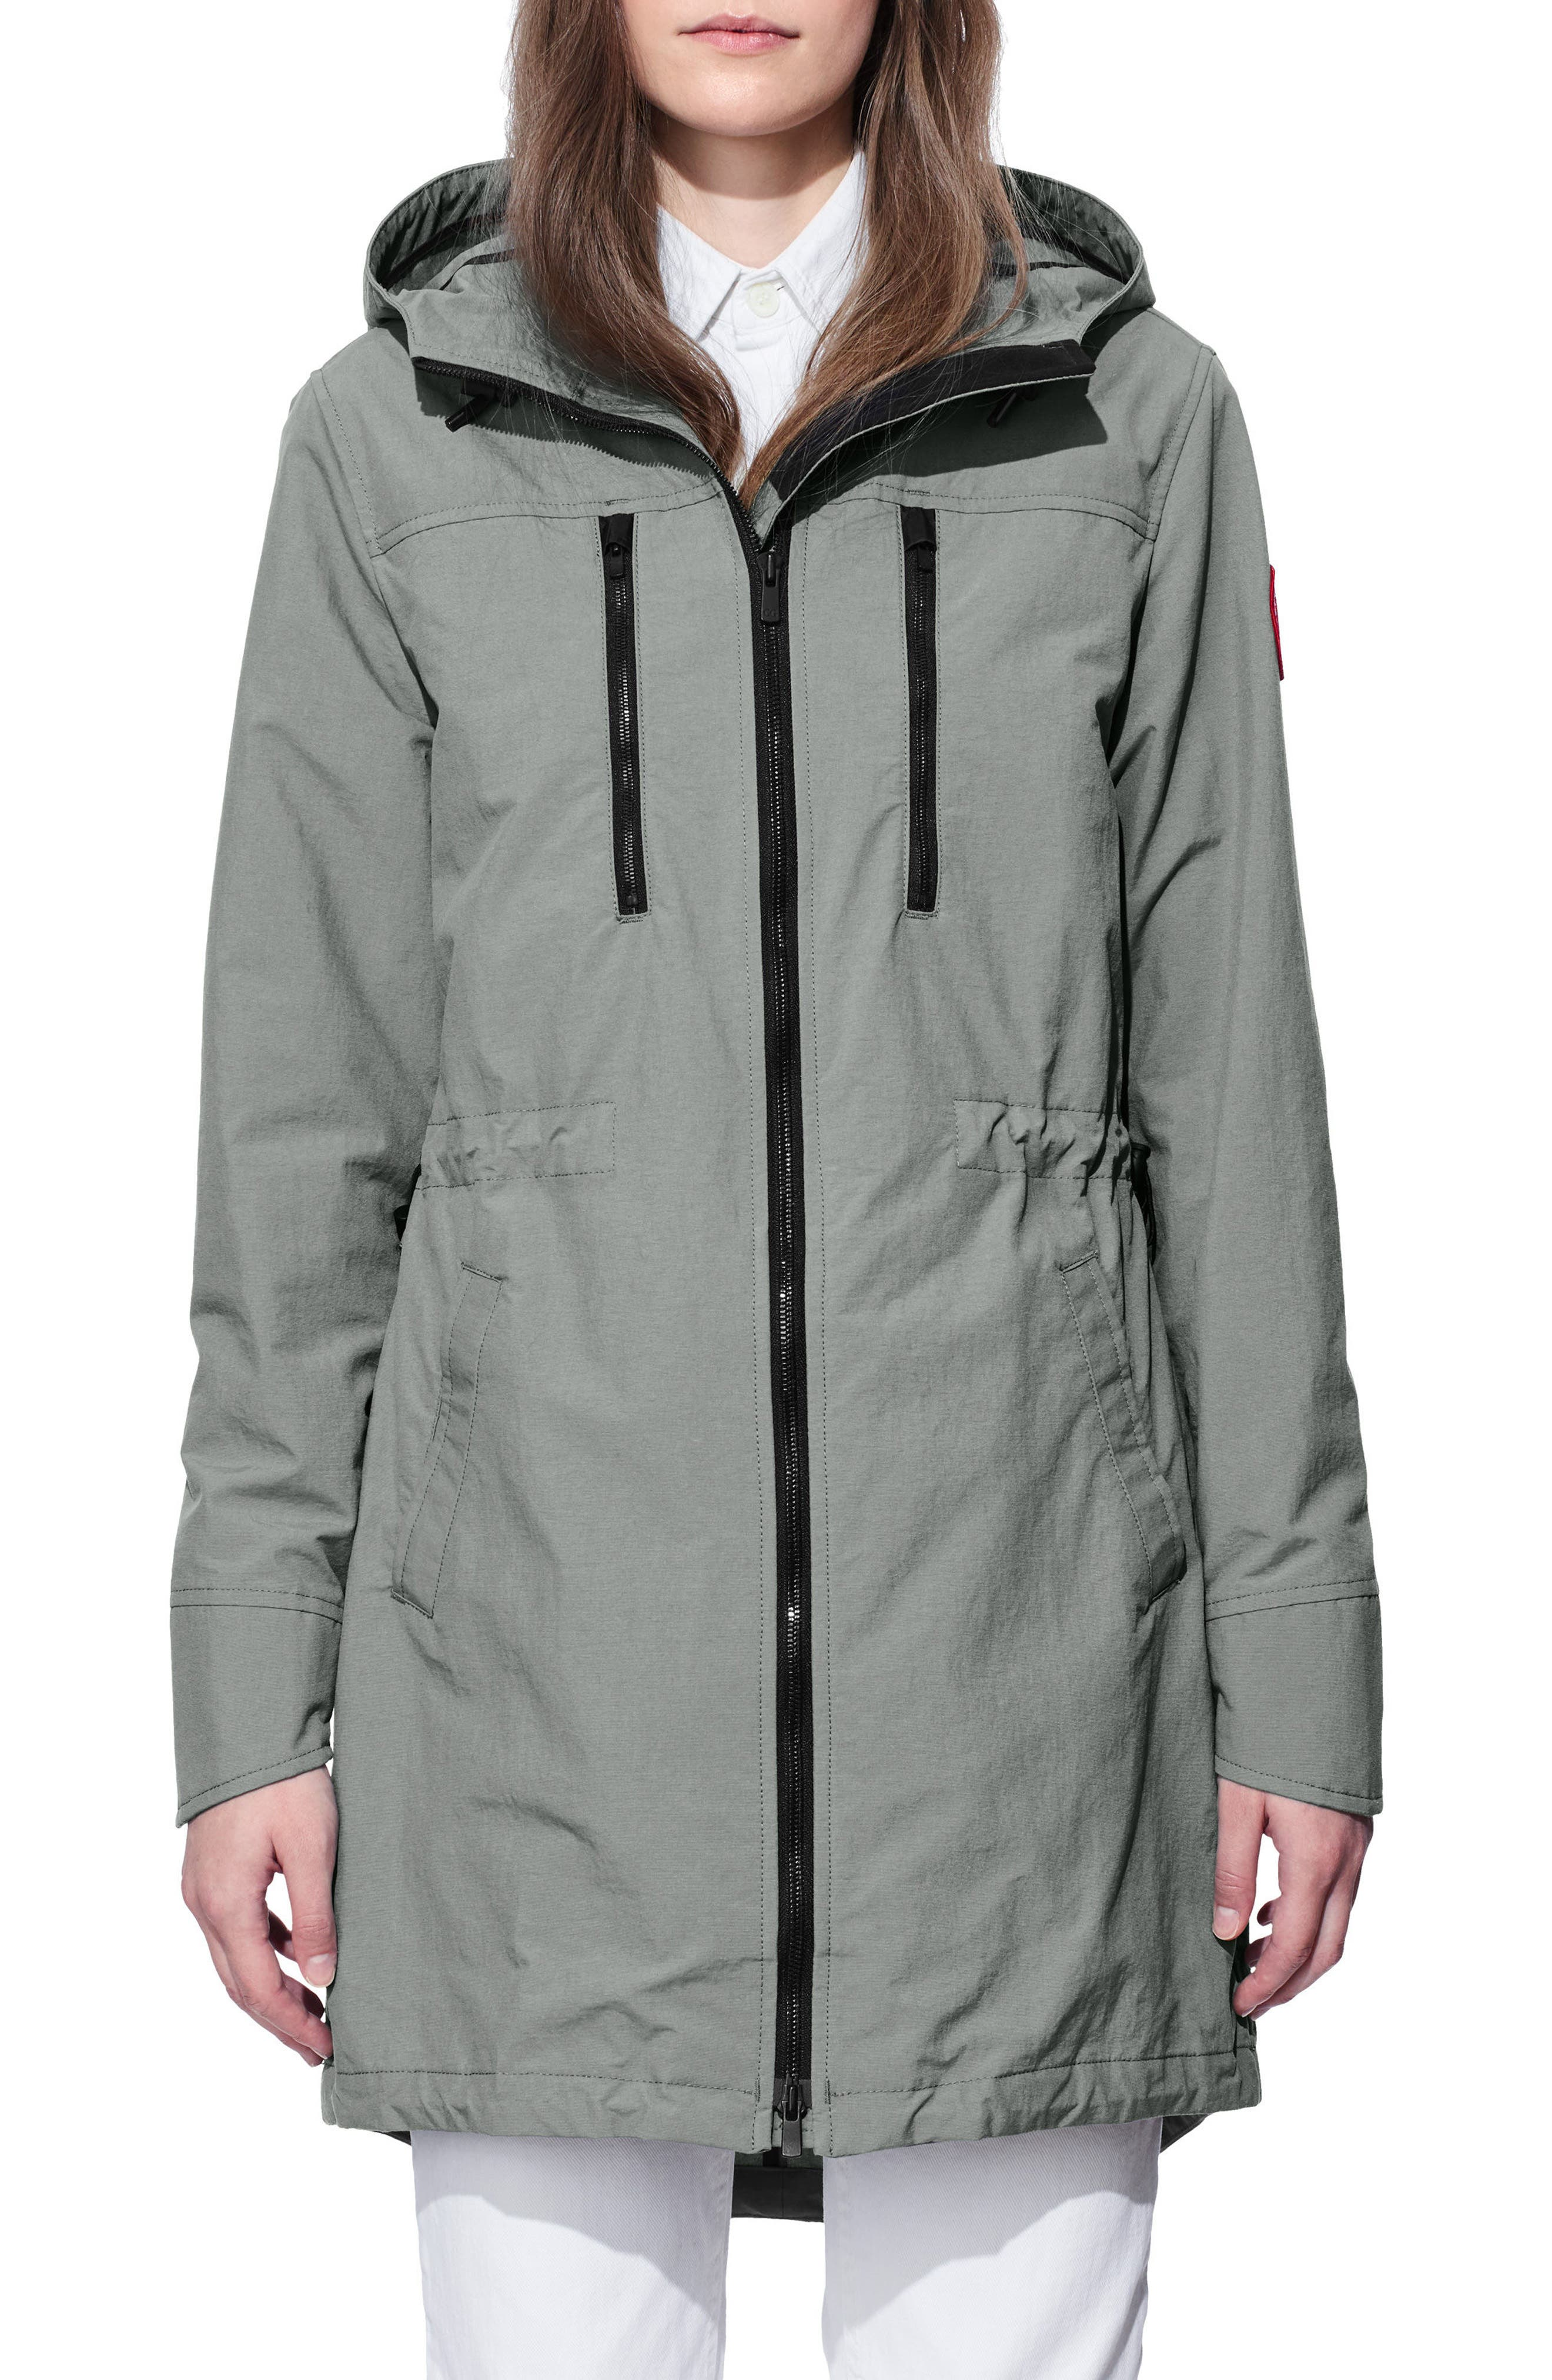 Brossard Hooded Drop Tail Jacket,                         Main,                         color, 031